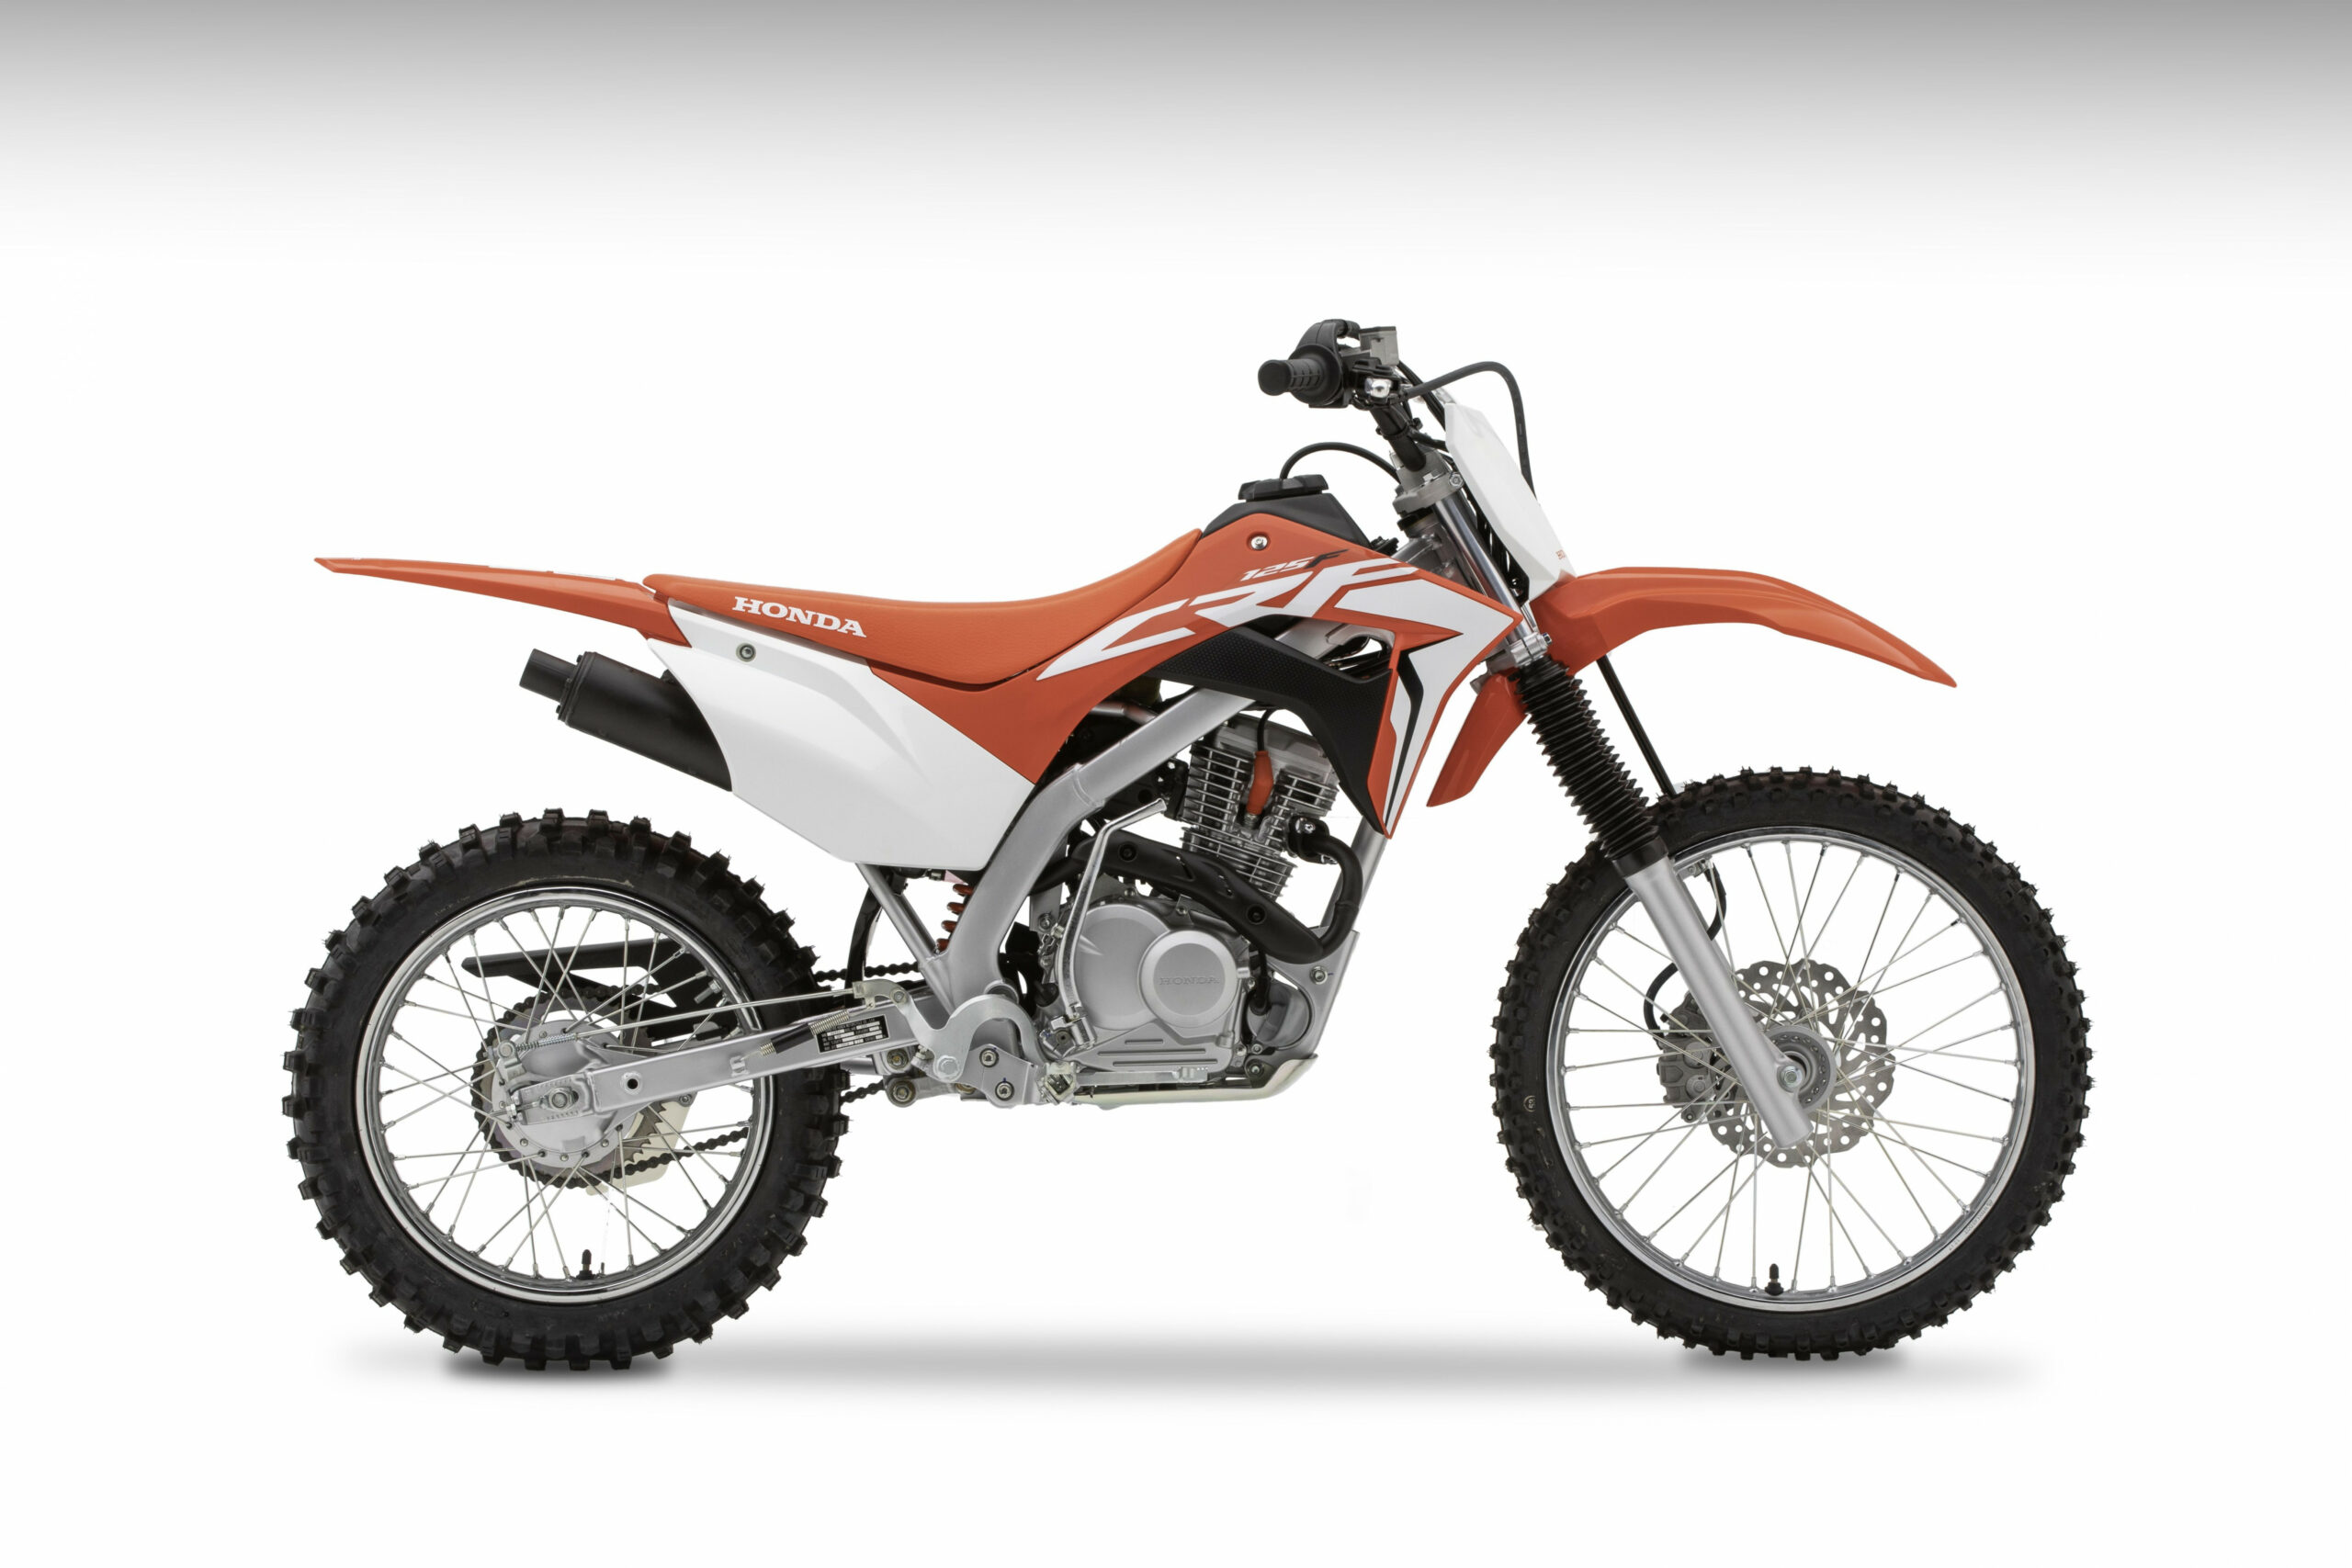 New Model and Performance 2022 Honda Dirt Bikes